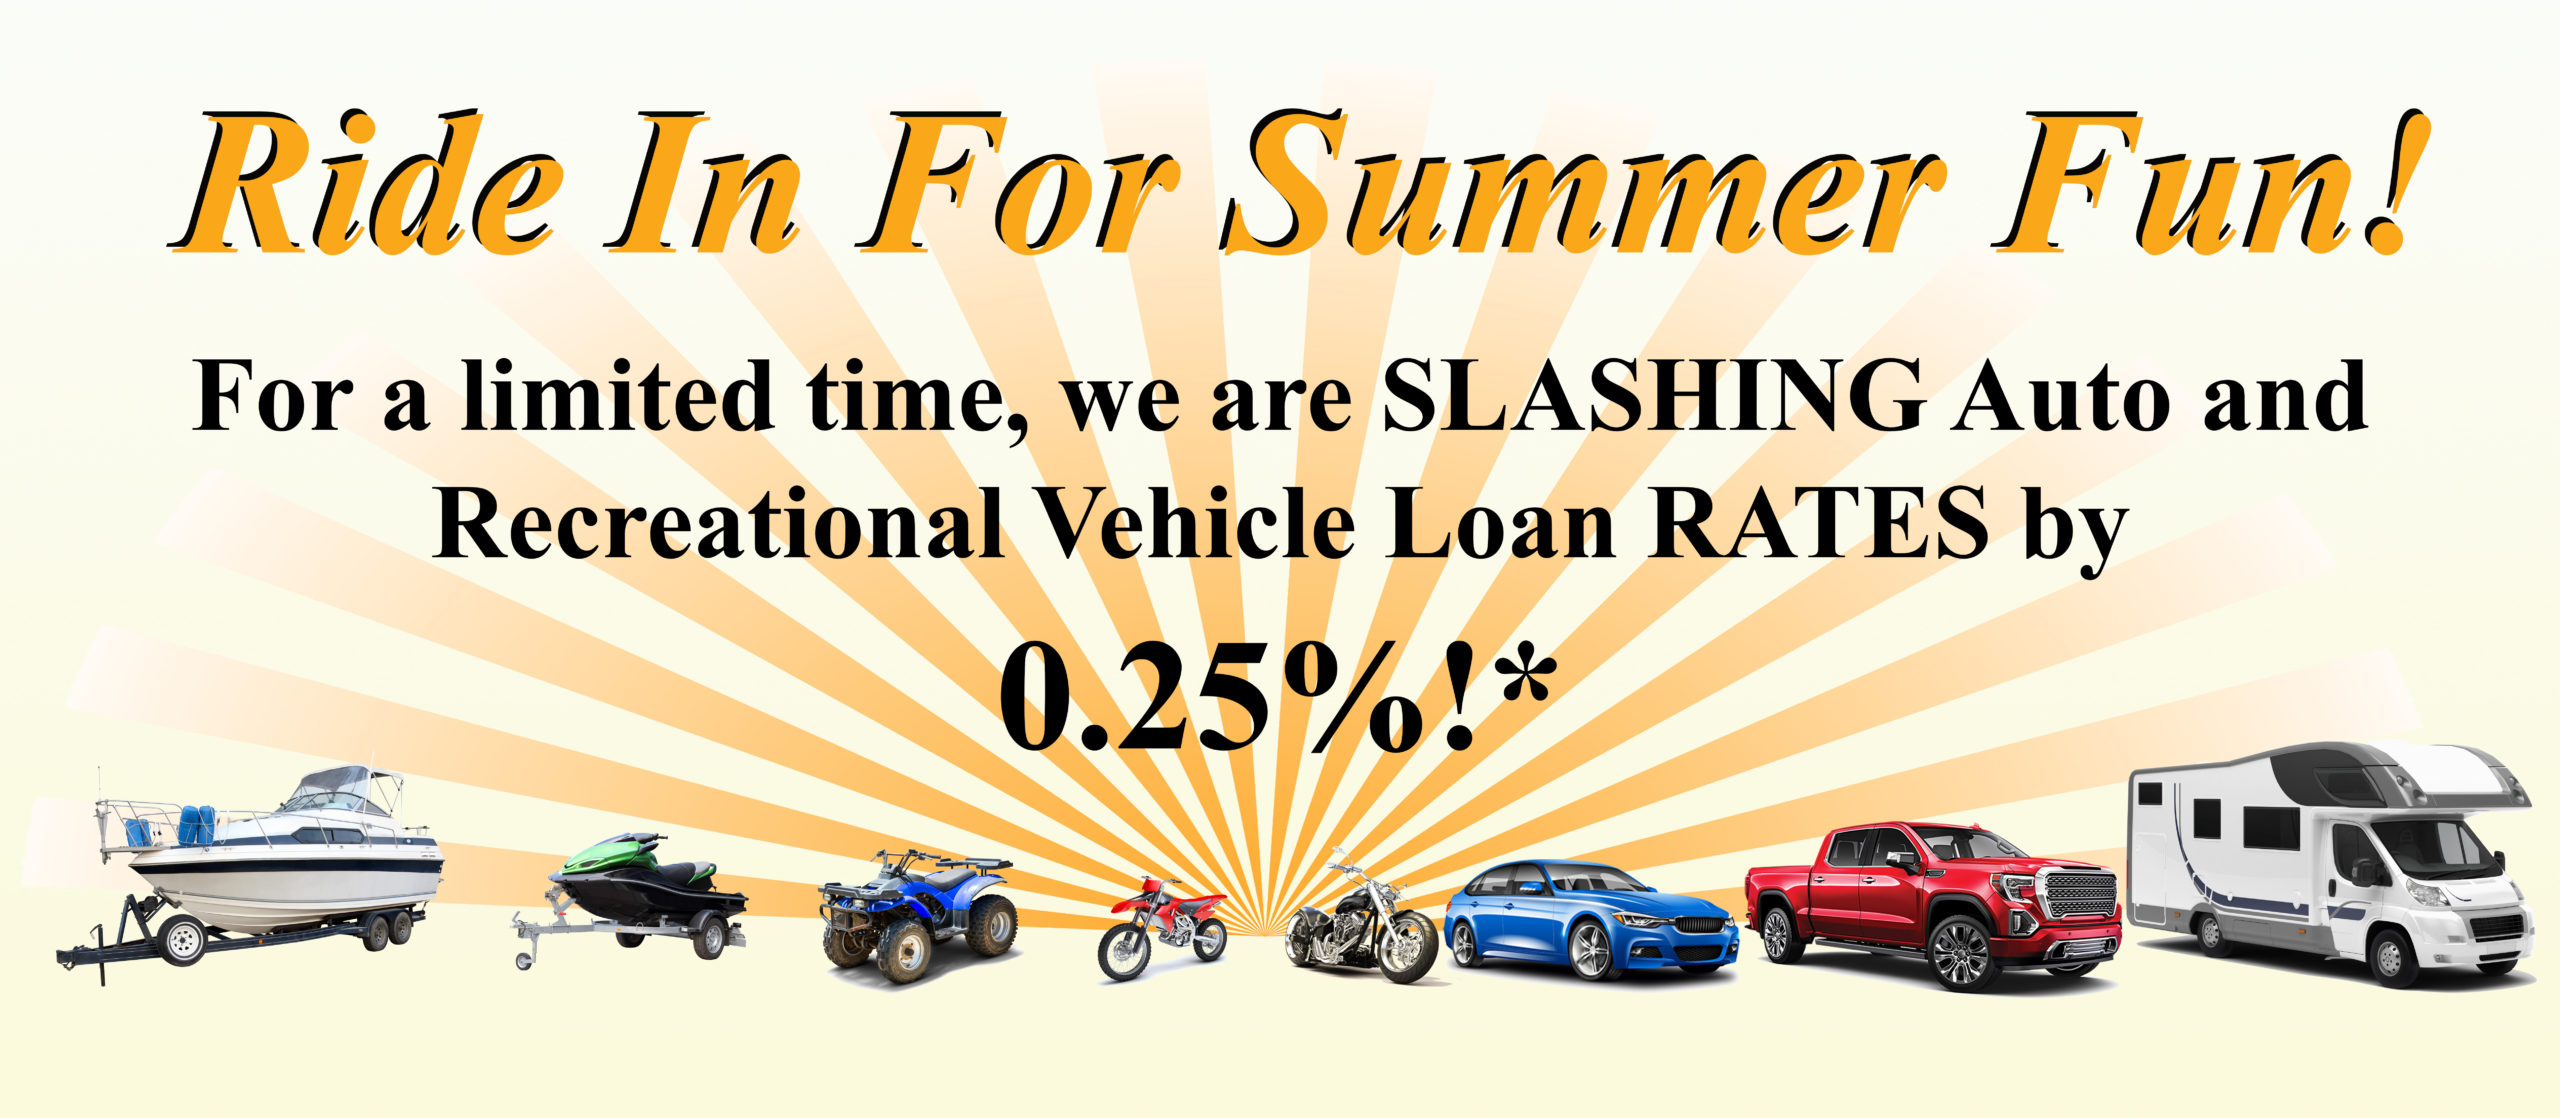 Ride in for summer fun! For a limited time, we are slashing auto and recreational vehicle loan rates by a quarter of a percent..